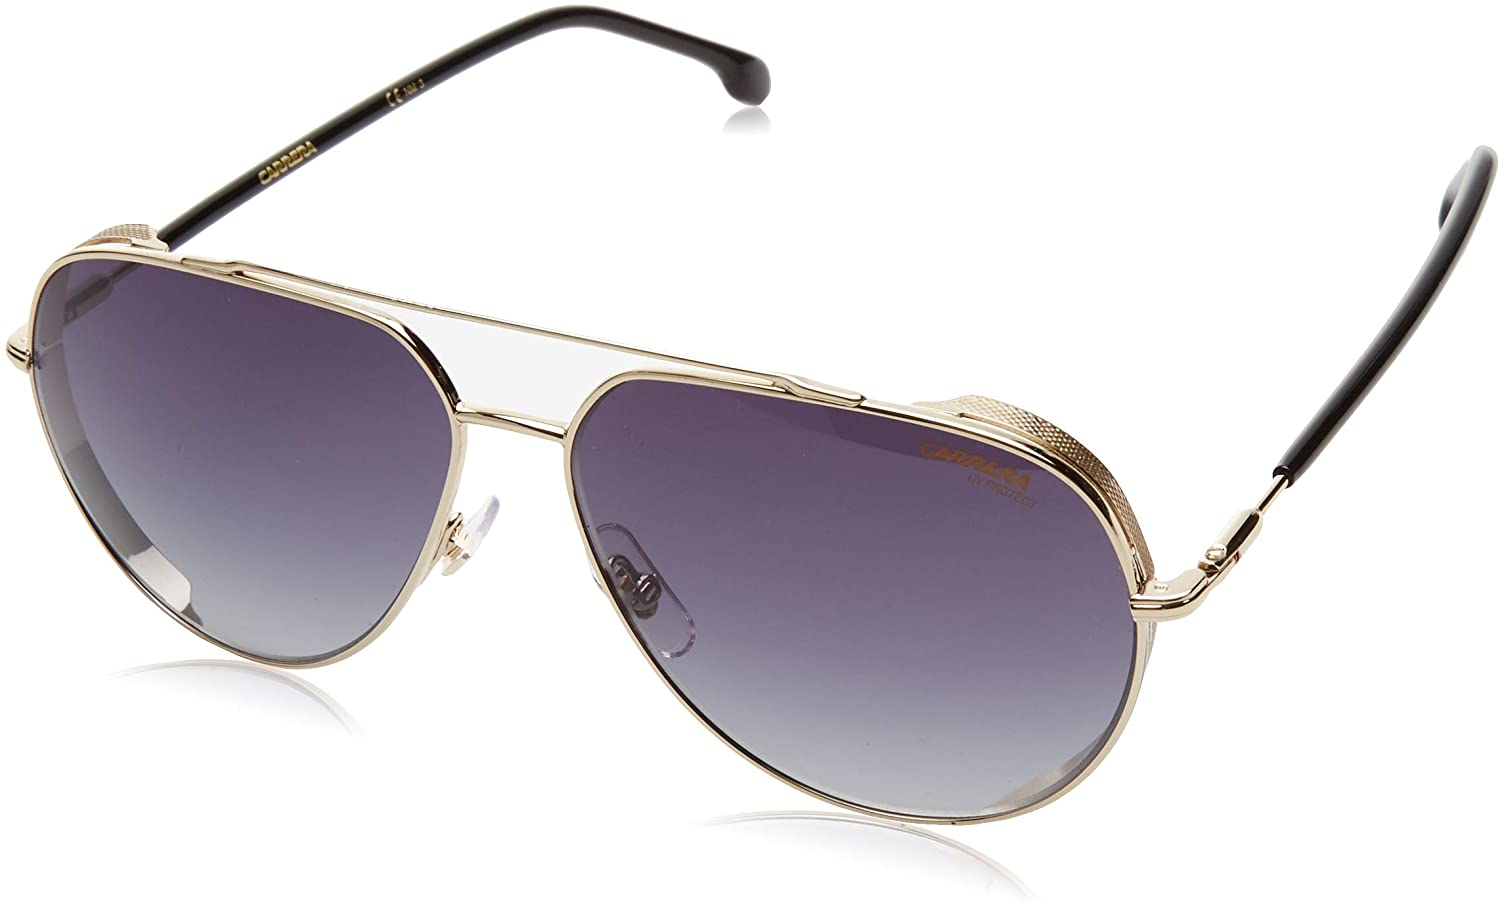 Carrera CARRERA 221/S GOLD/GREY SHADED 60/13/145 unisex Sunglasses